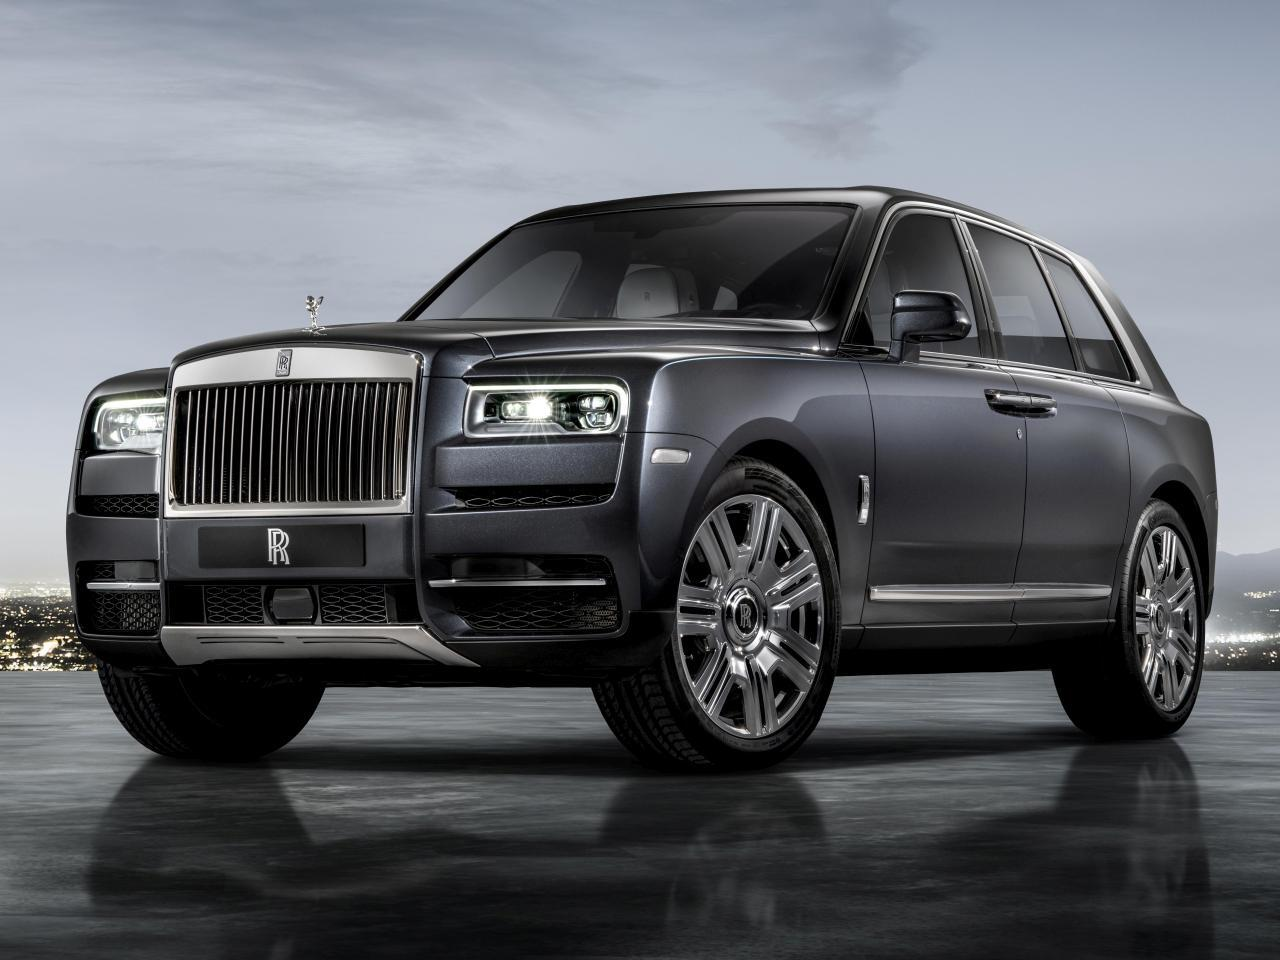 rolls royce cullinan luxusmarke wildert k nftig im suv. Black Bedroom Furniture Sets. Home Design Ideas